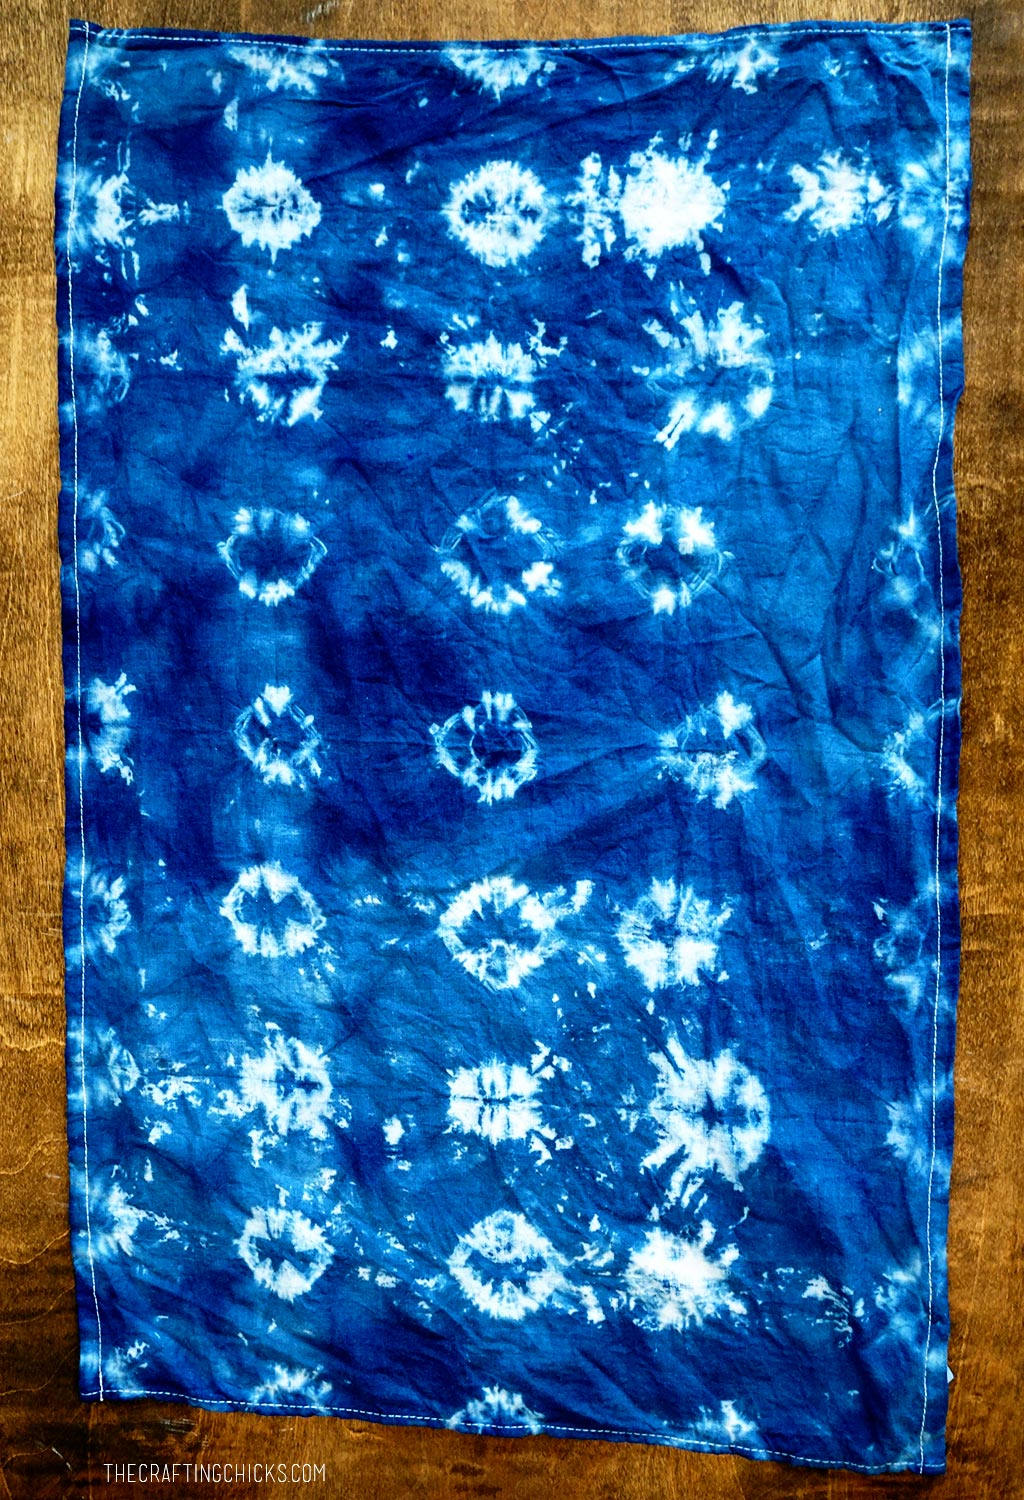 Results of rubberband shibori